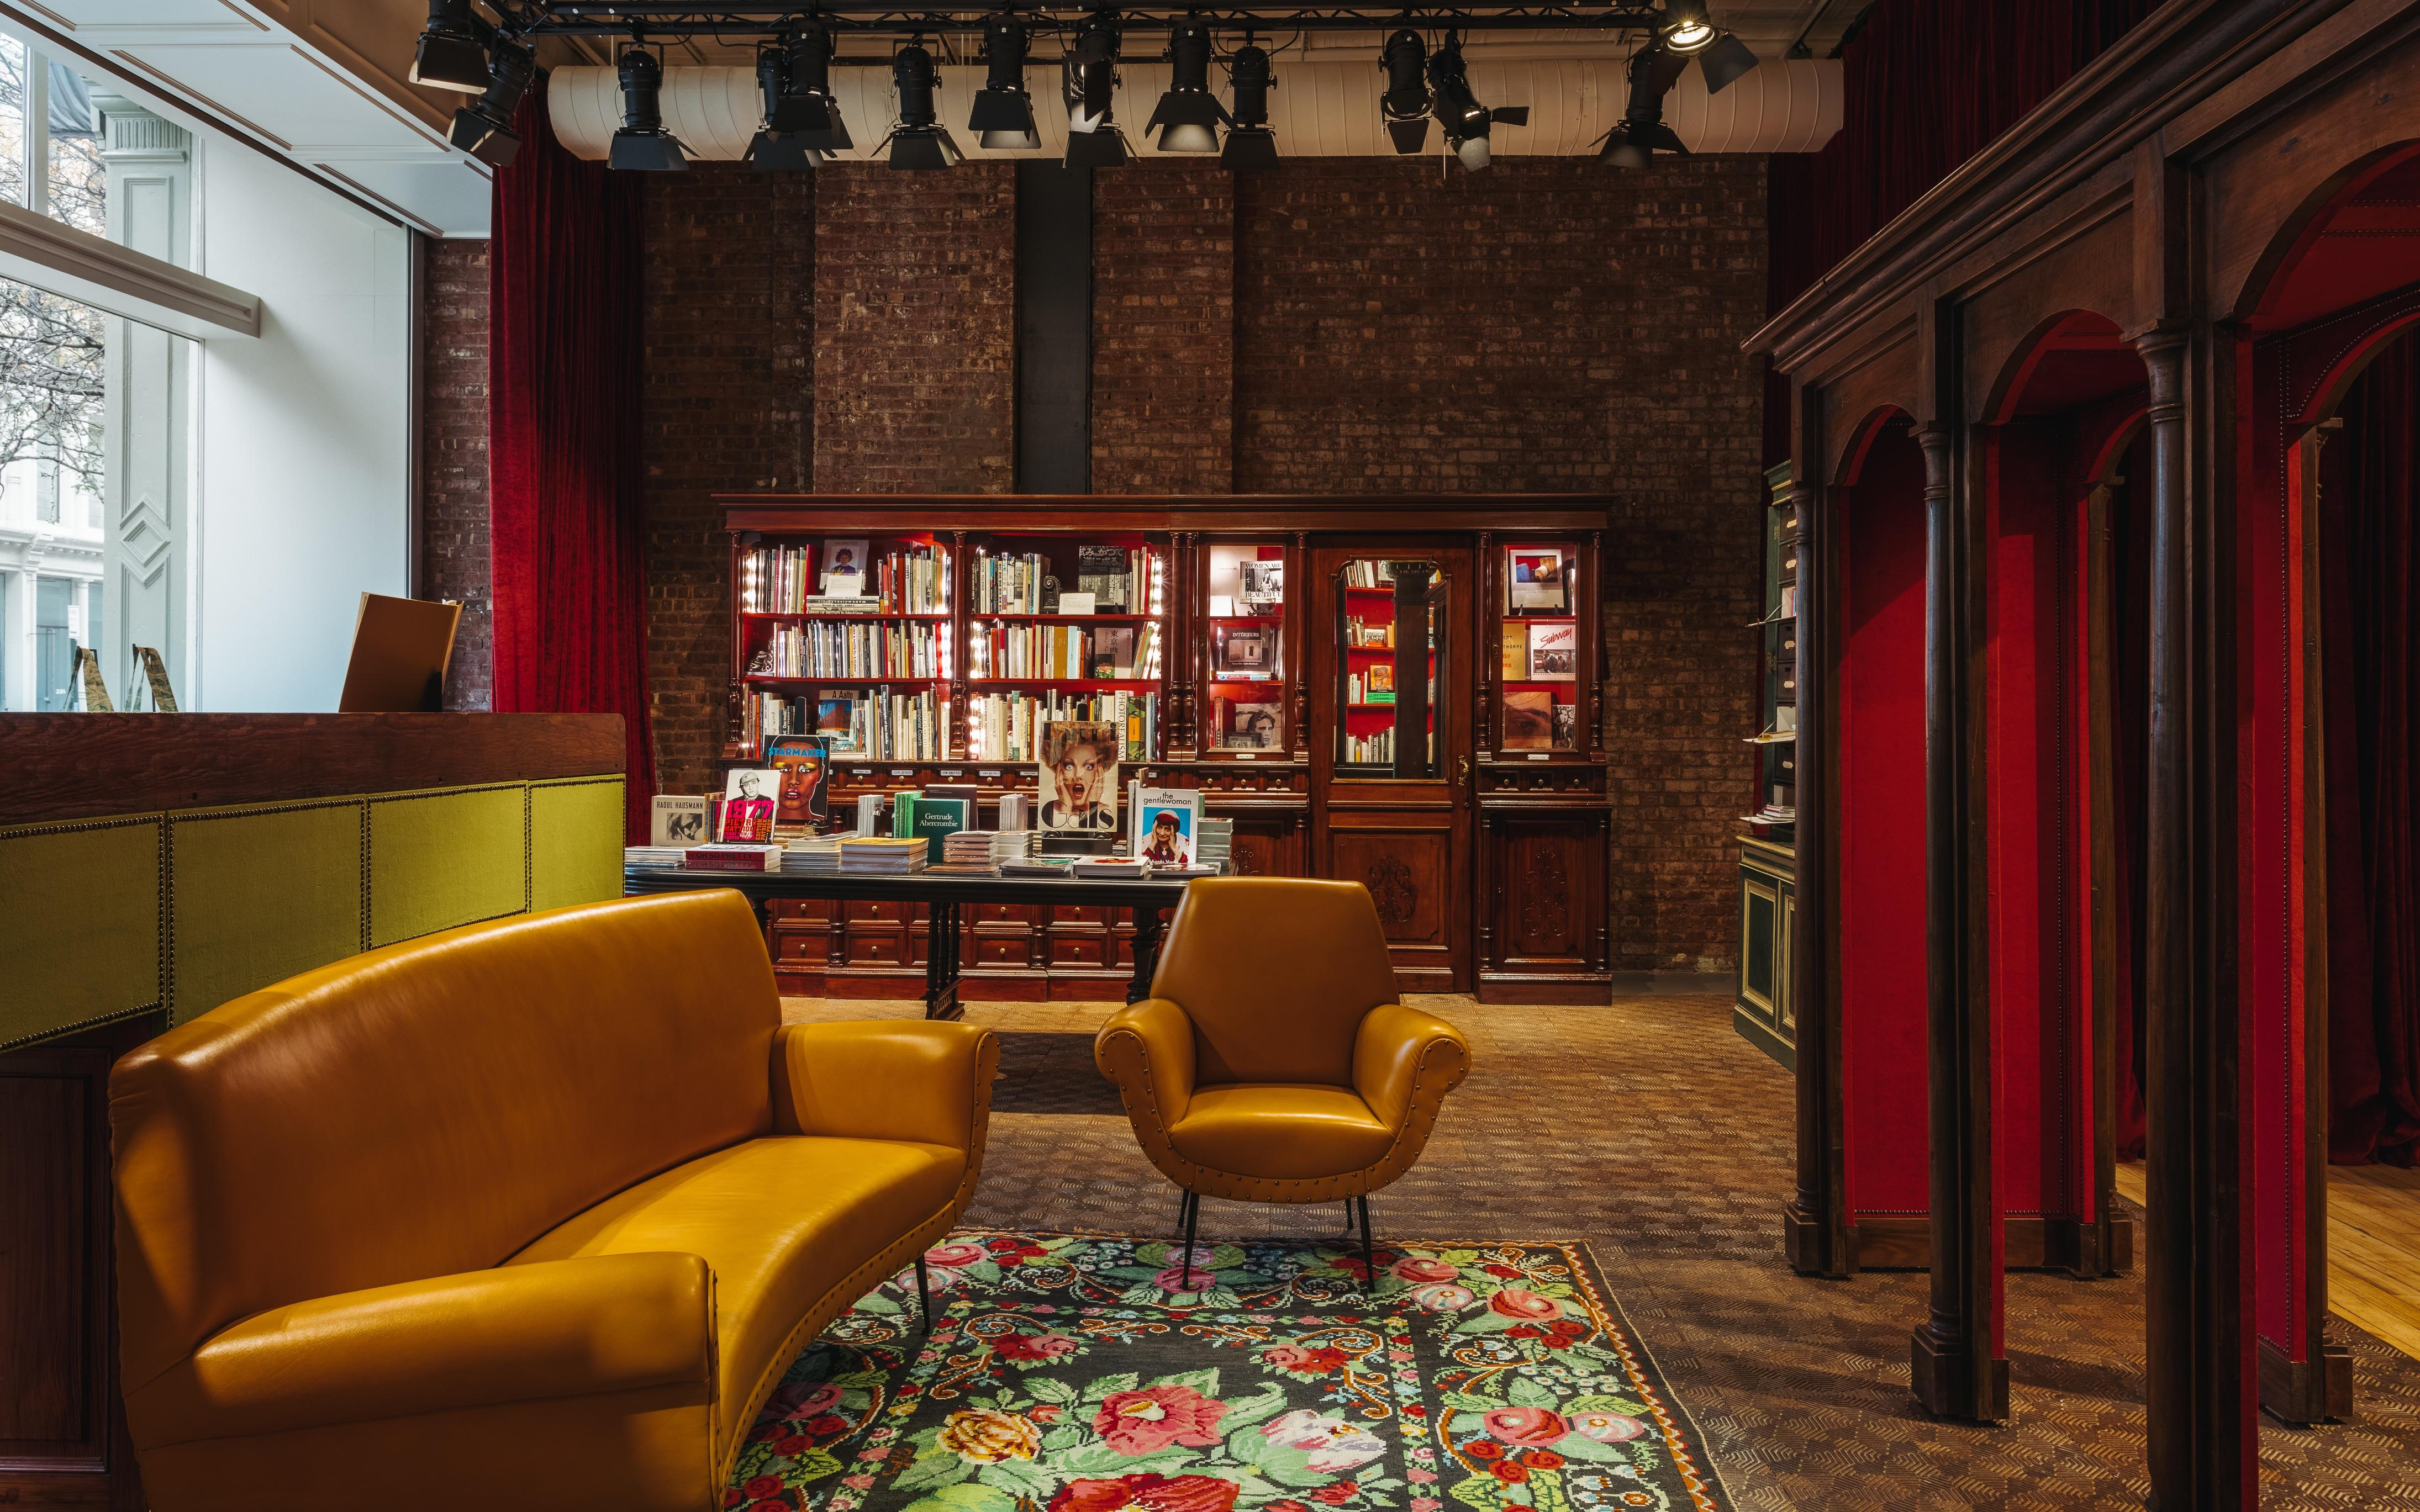 Gucci Wooster Bookstore image 3